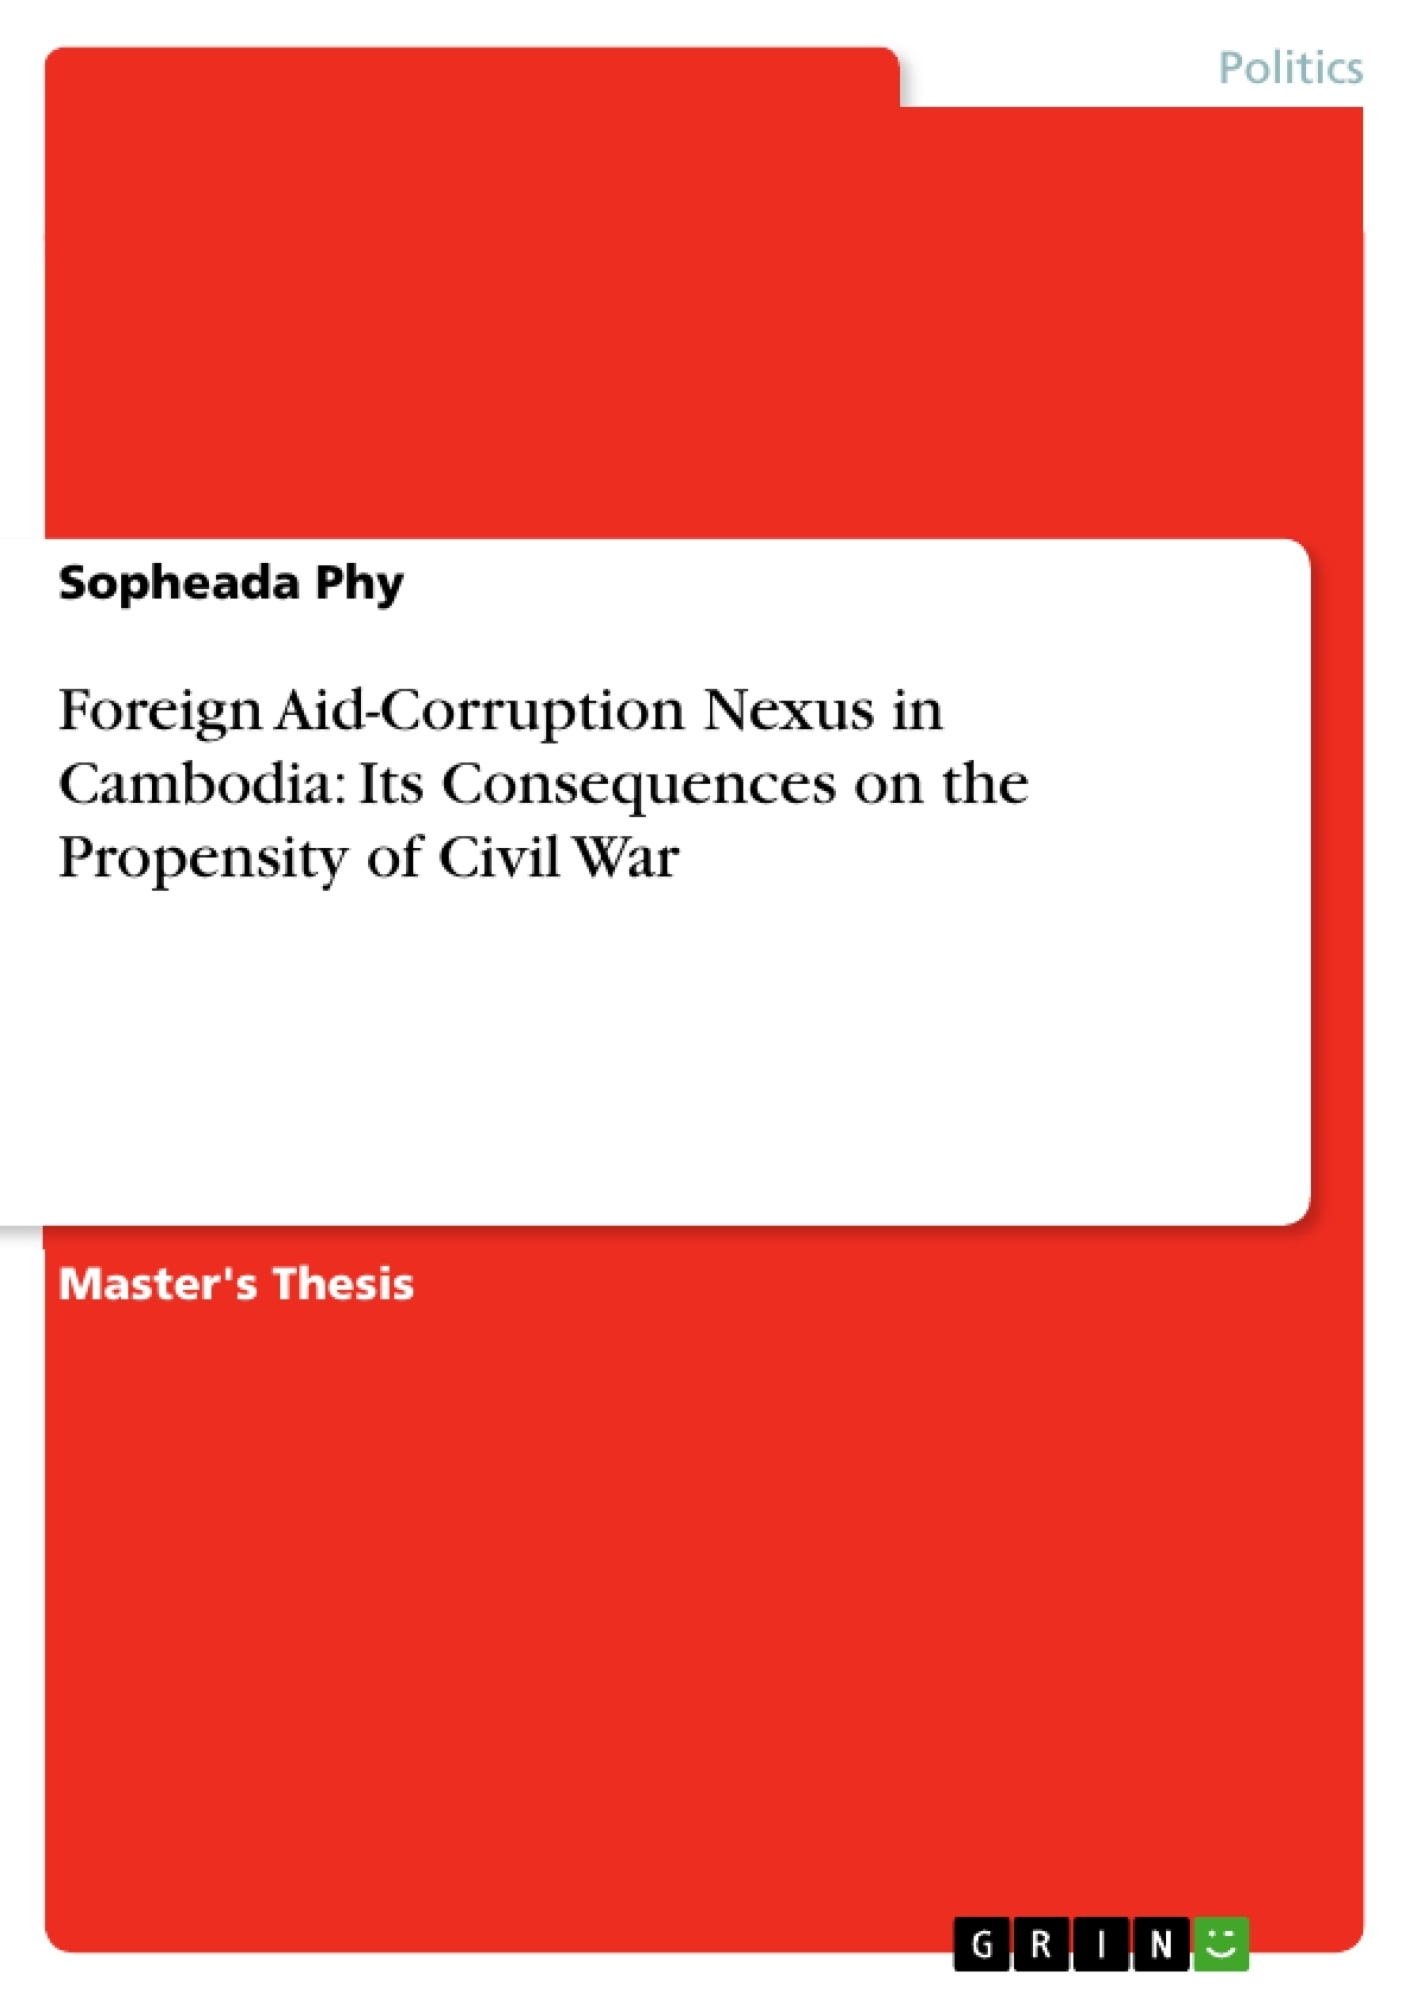 Title: Foreign Aid-Corruption Nexus in Cambodia: Its Consequences on the Propensity of Civil War